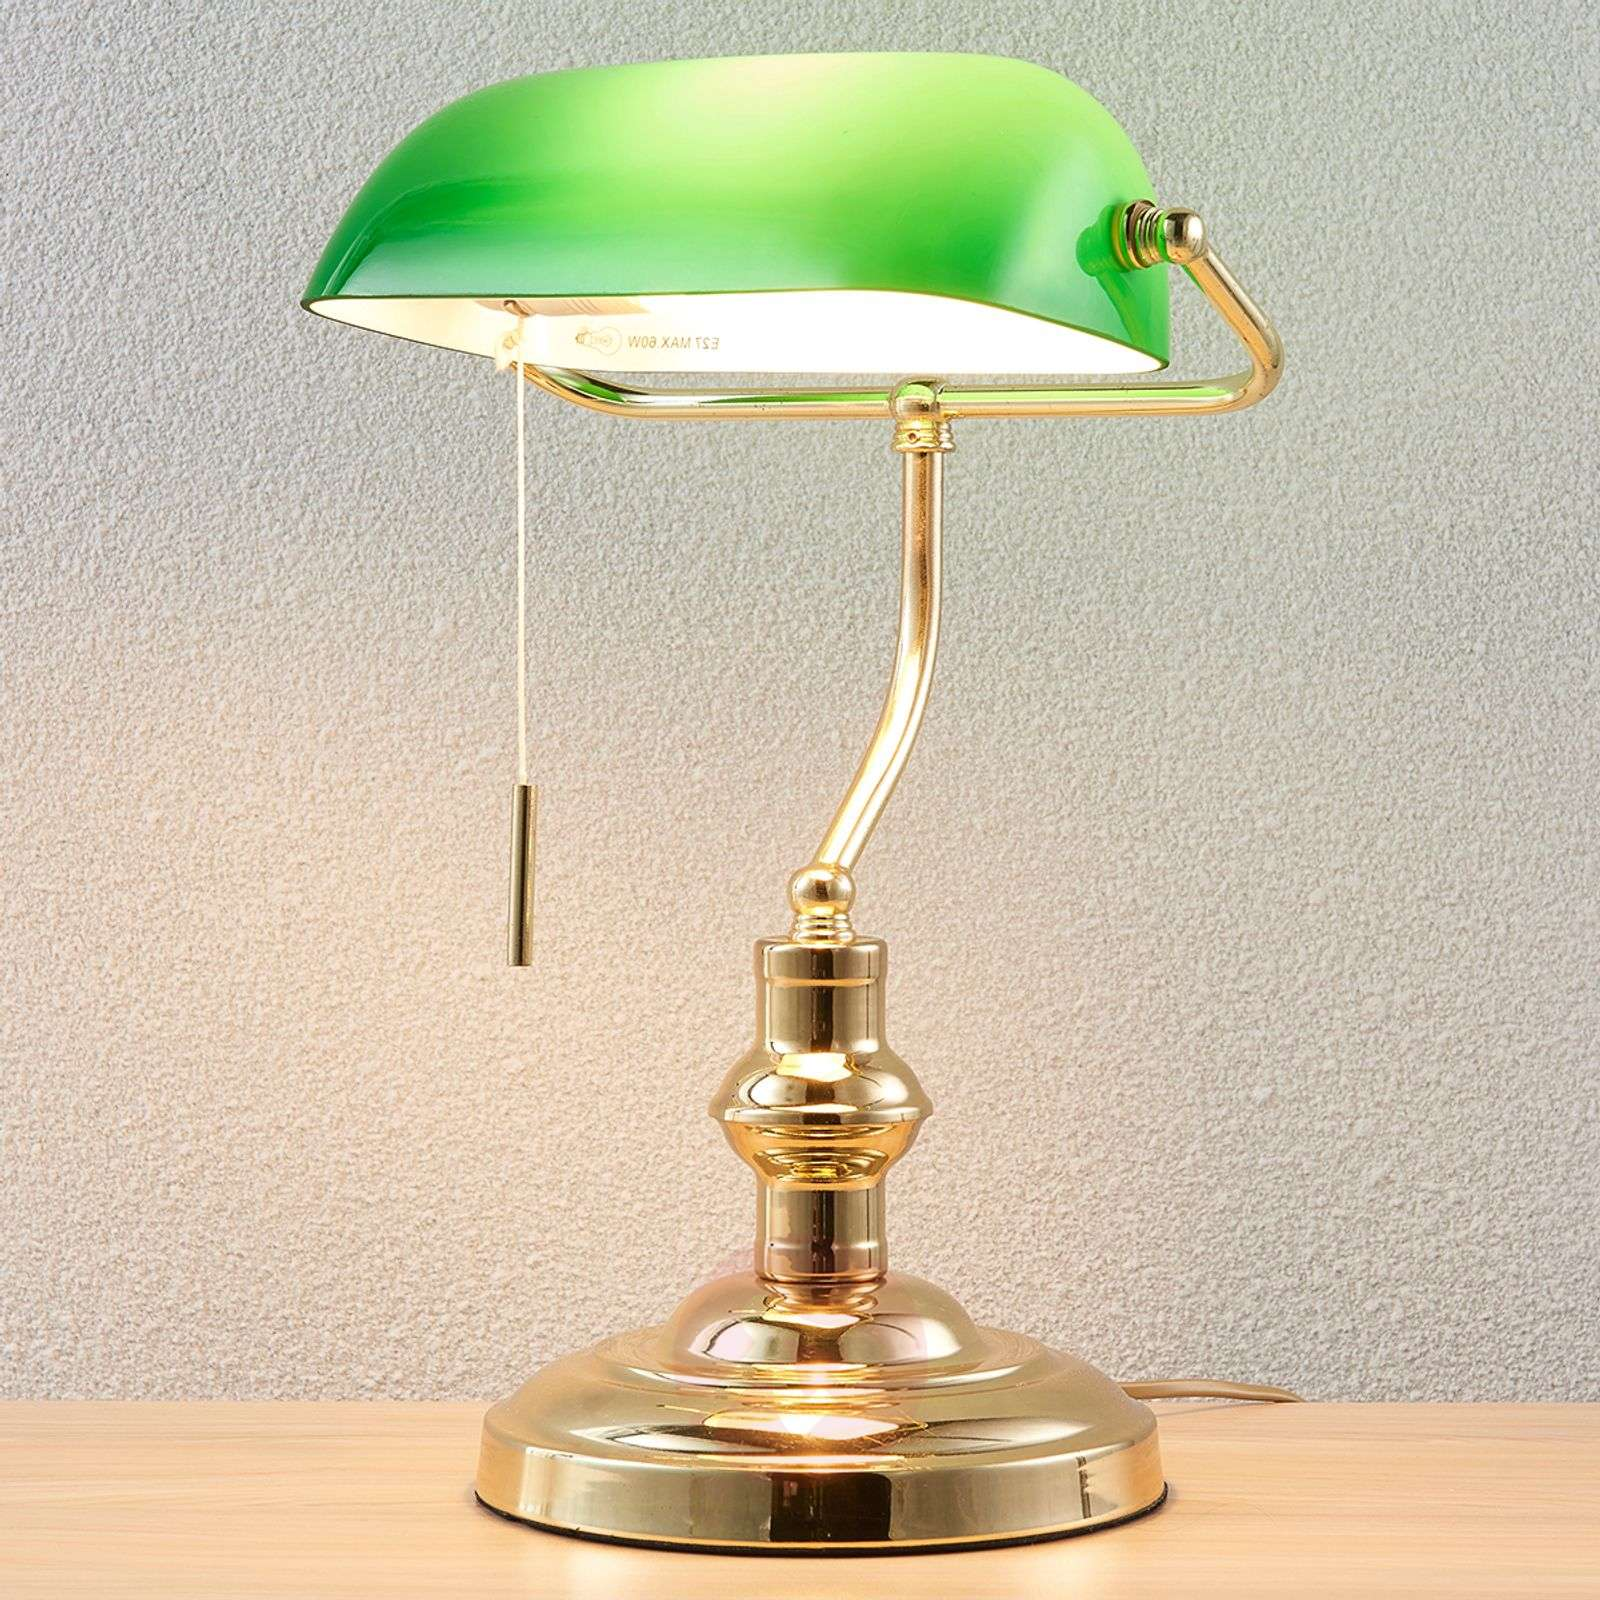 Buy table lamps classicantique from lights milenka bankers lamp polished brass aloadofball Image collections